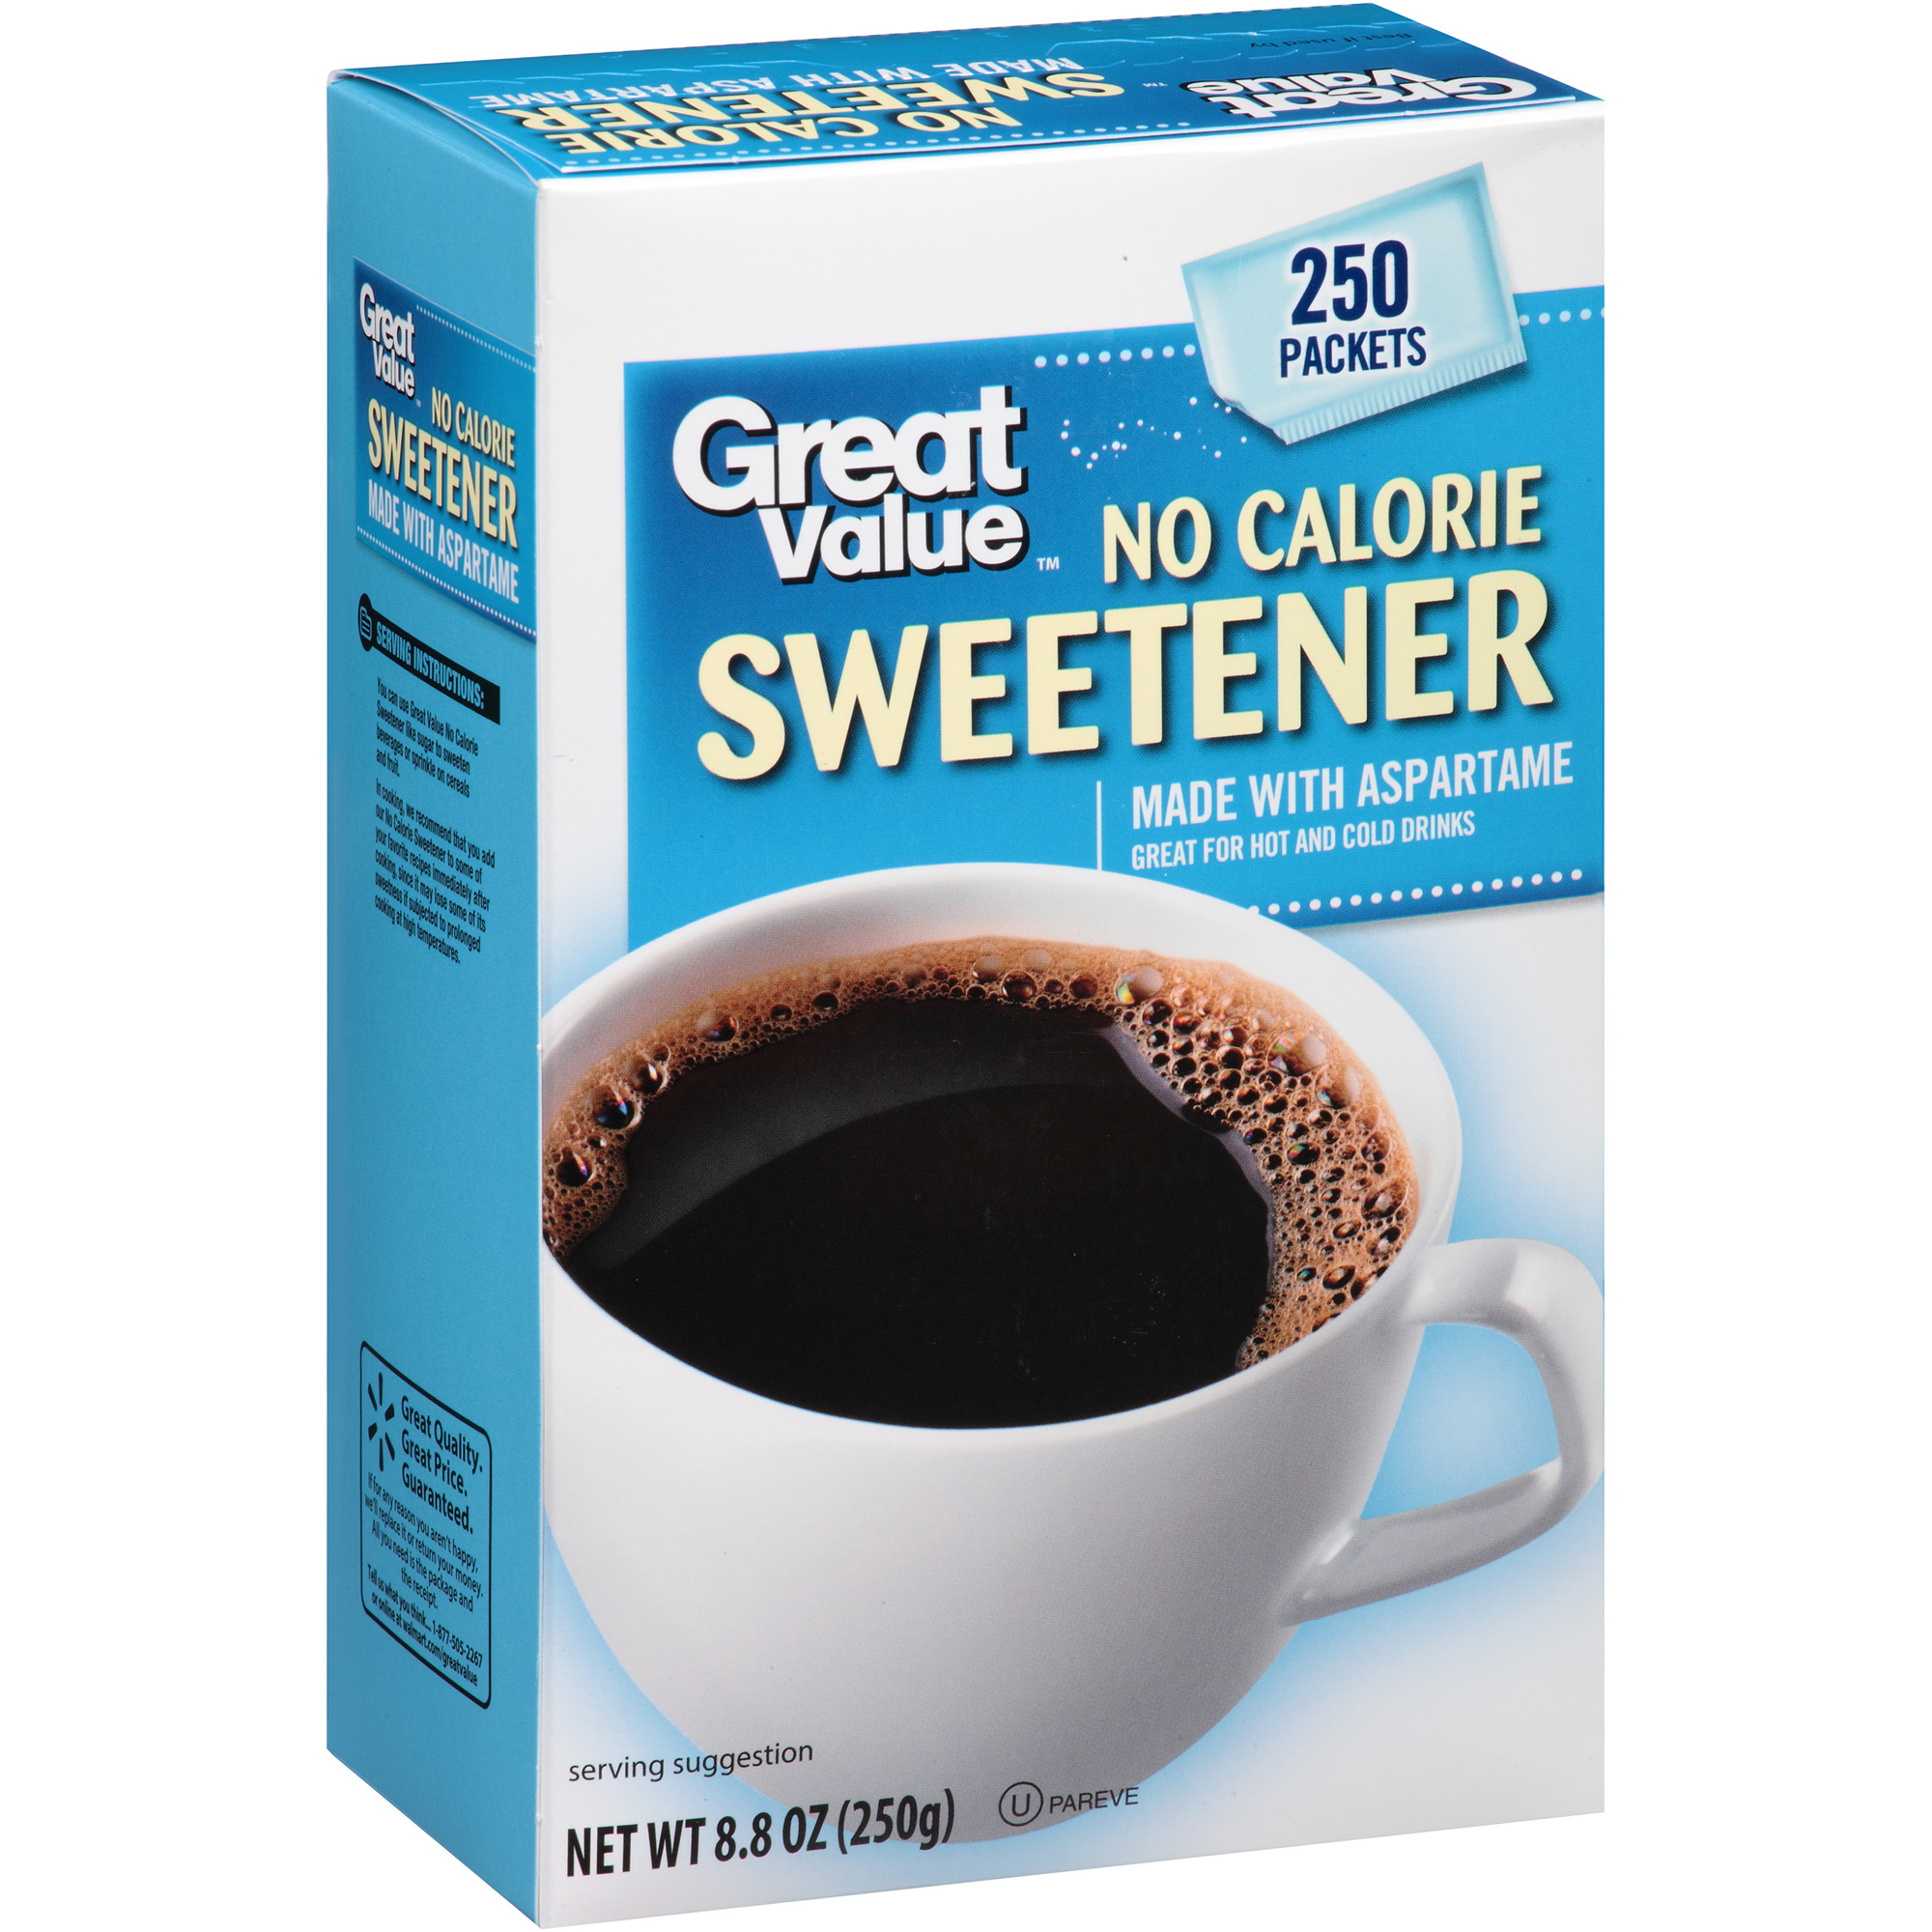 Great Value No Calorie Sweetener, 250 count, 8.8 oz